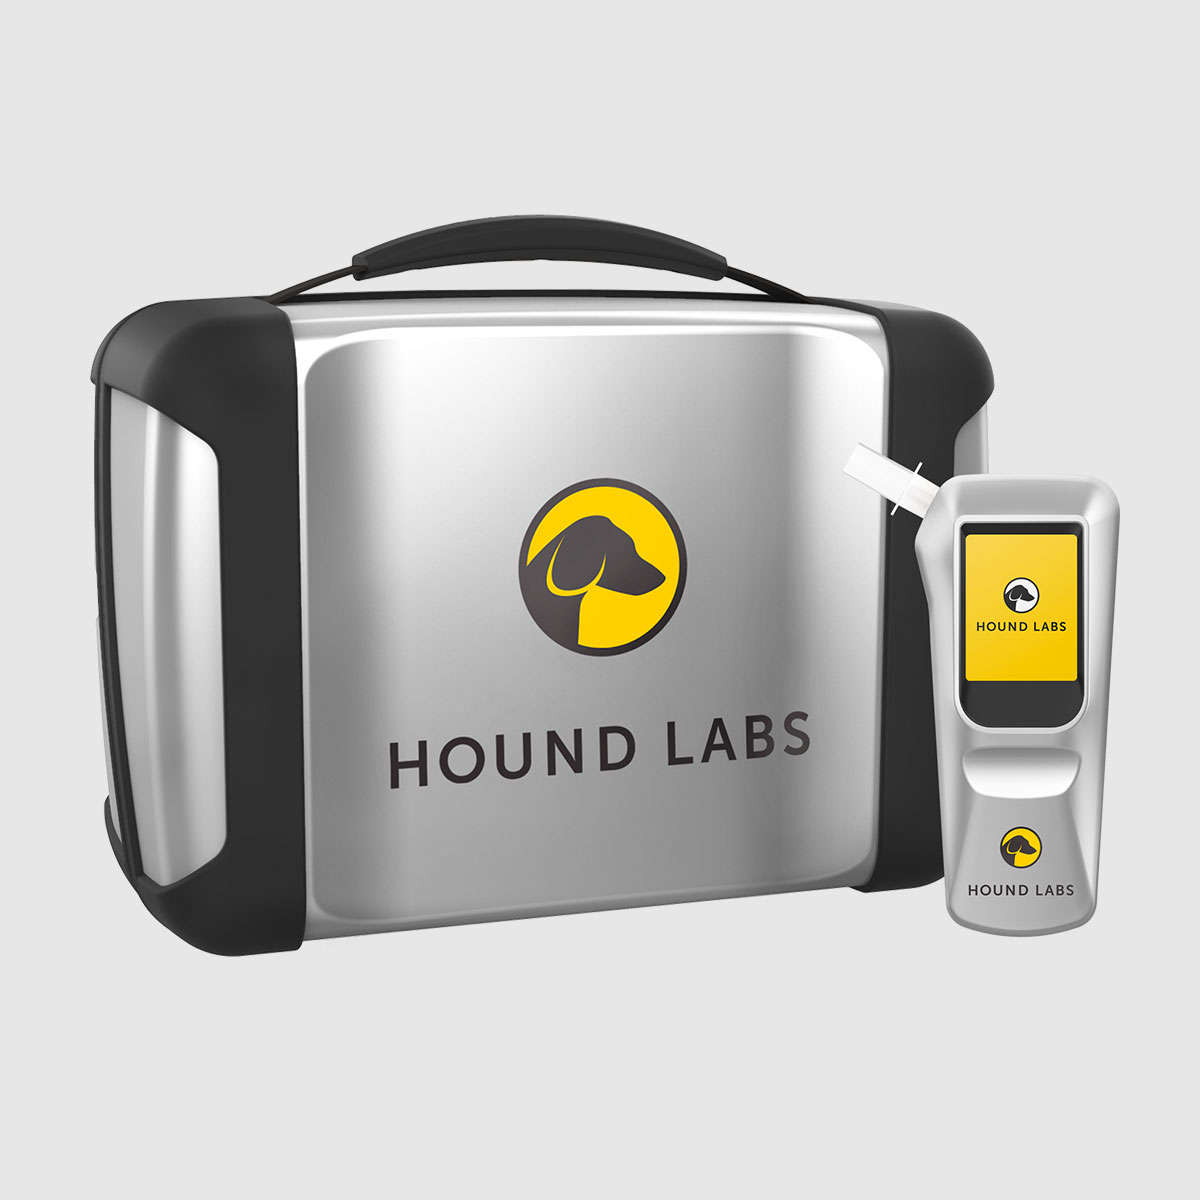 Hound-Labs-Device-Case-Image_1200px